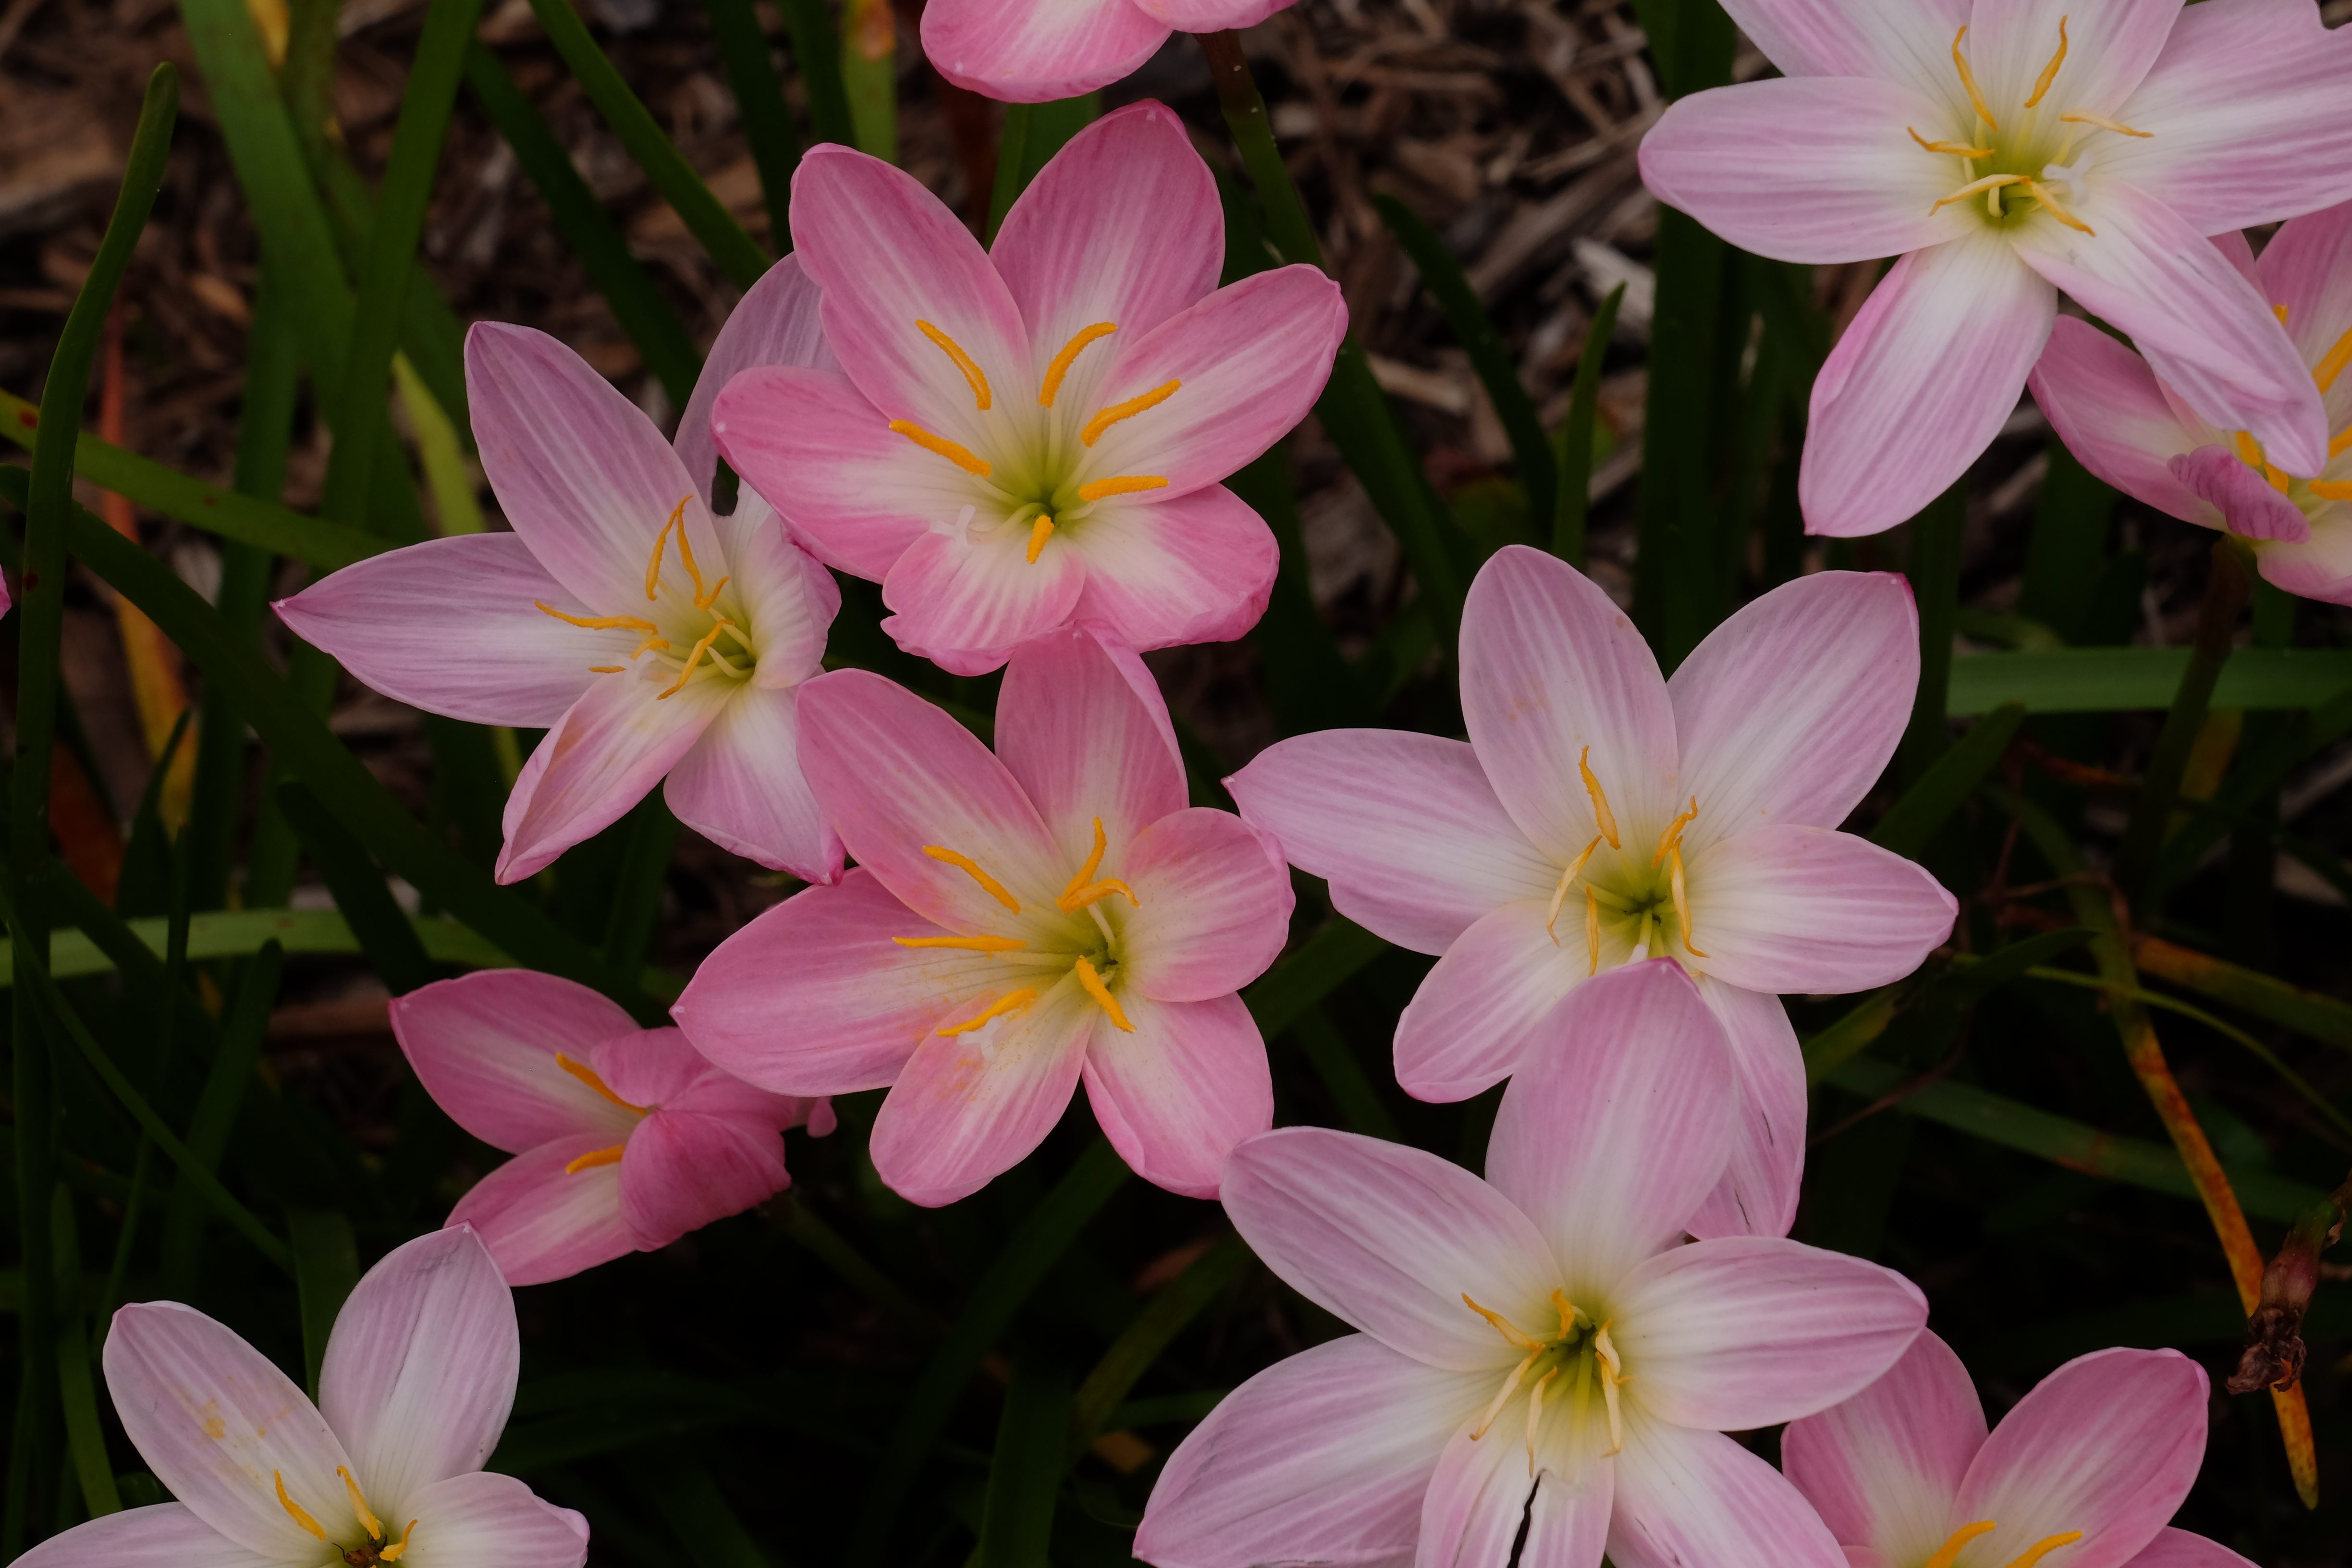 Zephyranthes 'Zodiac Surprise' - a Yucca Do introduction